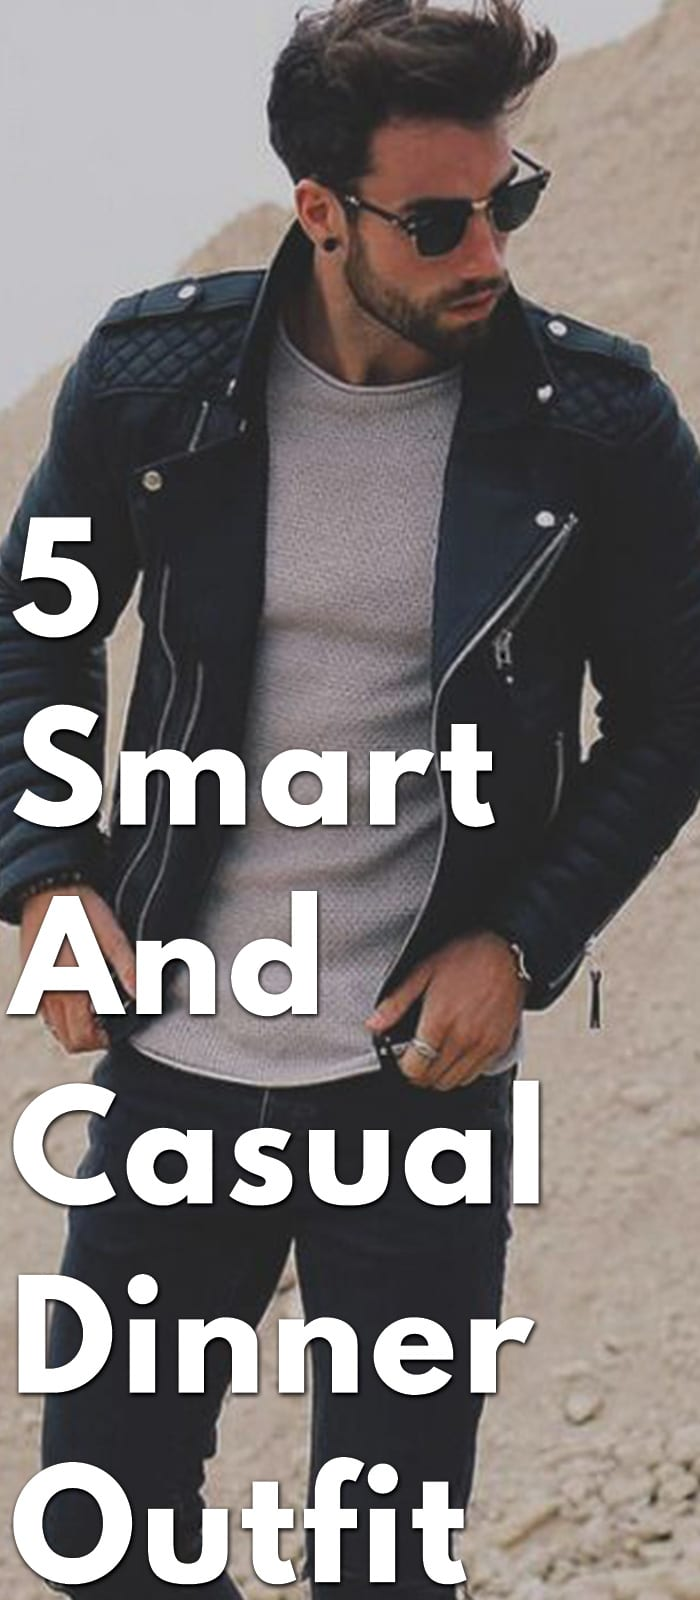 5-Smart-and-Casual-Dinner-Outfit